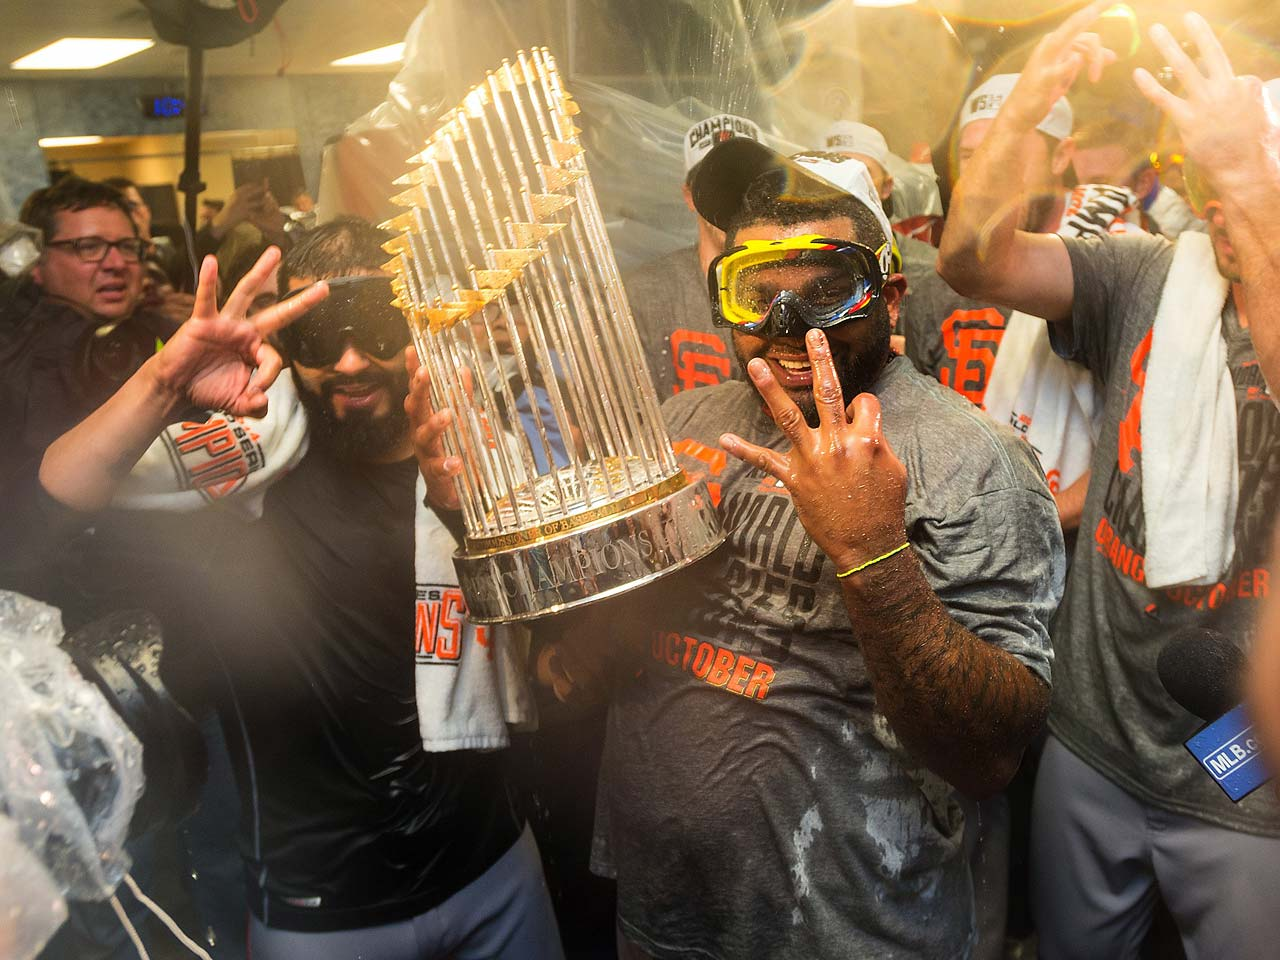 Free-agent third baseman Pablo Sandoval celebrates what could be his last playoff win with the Giants.